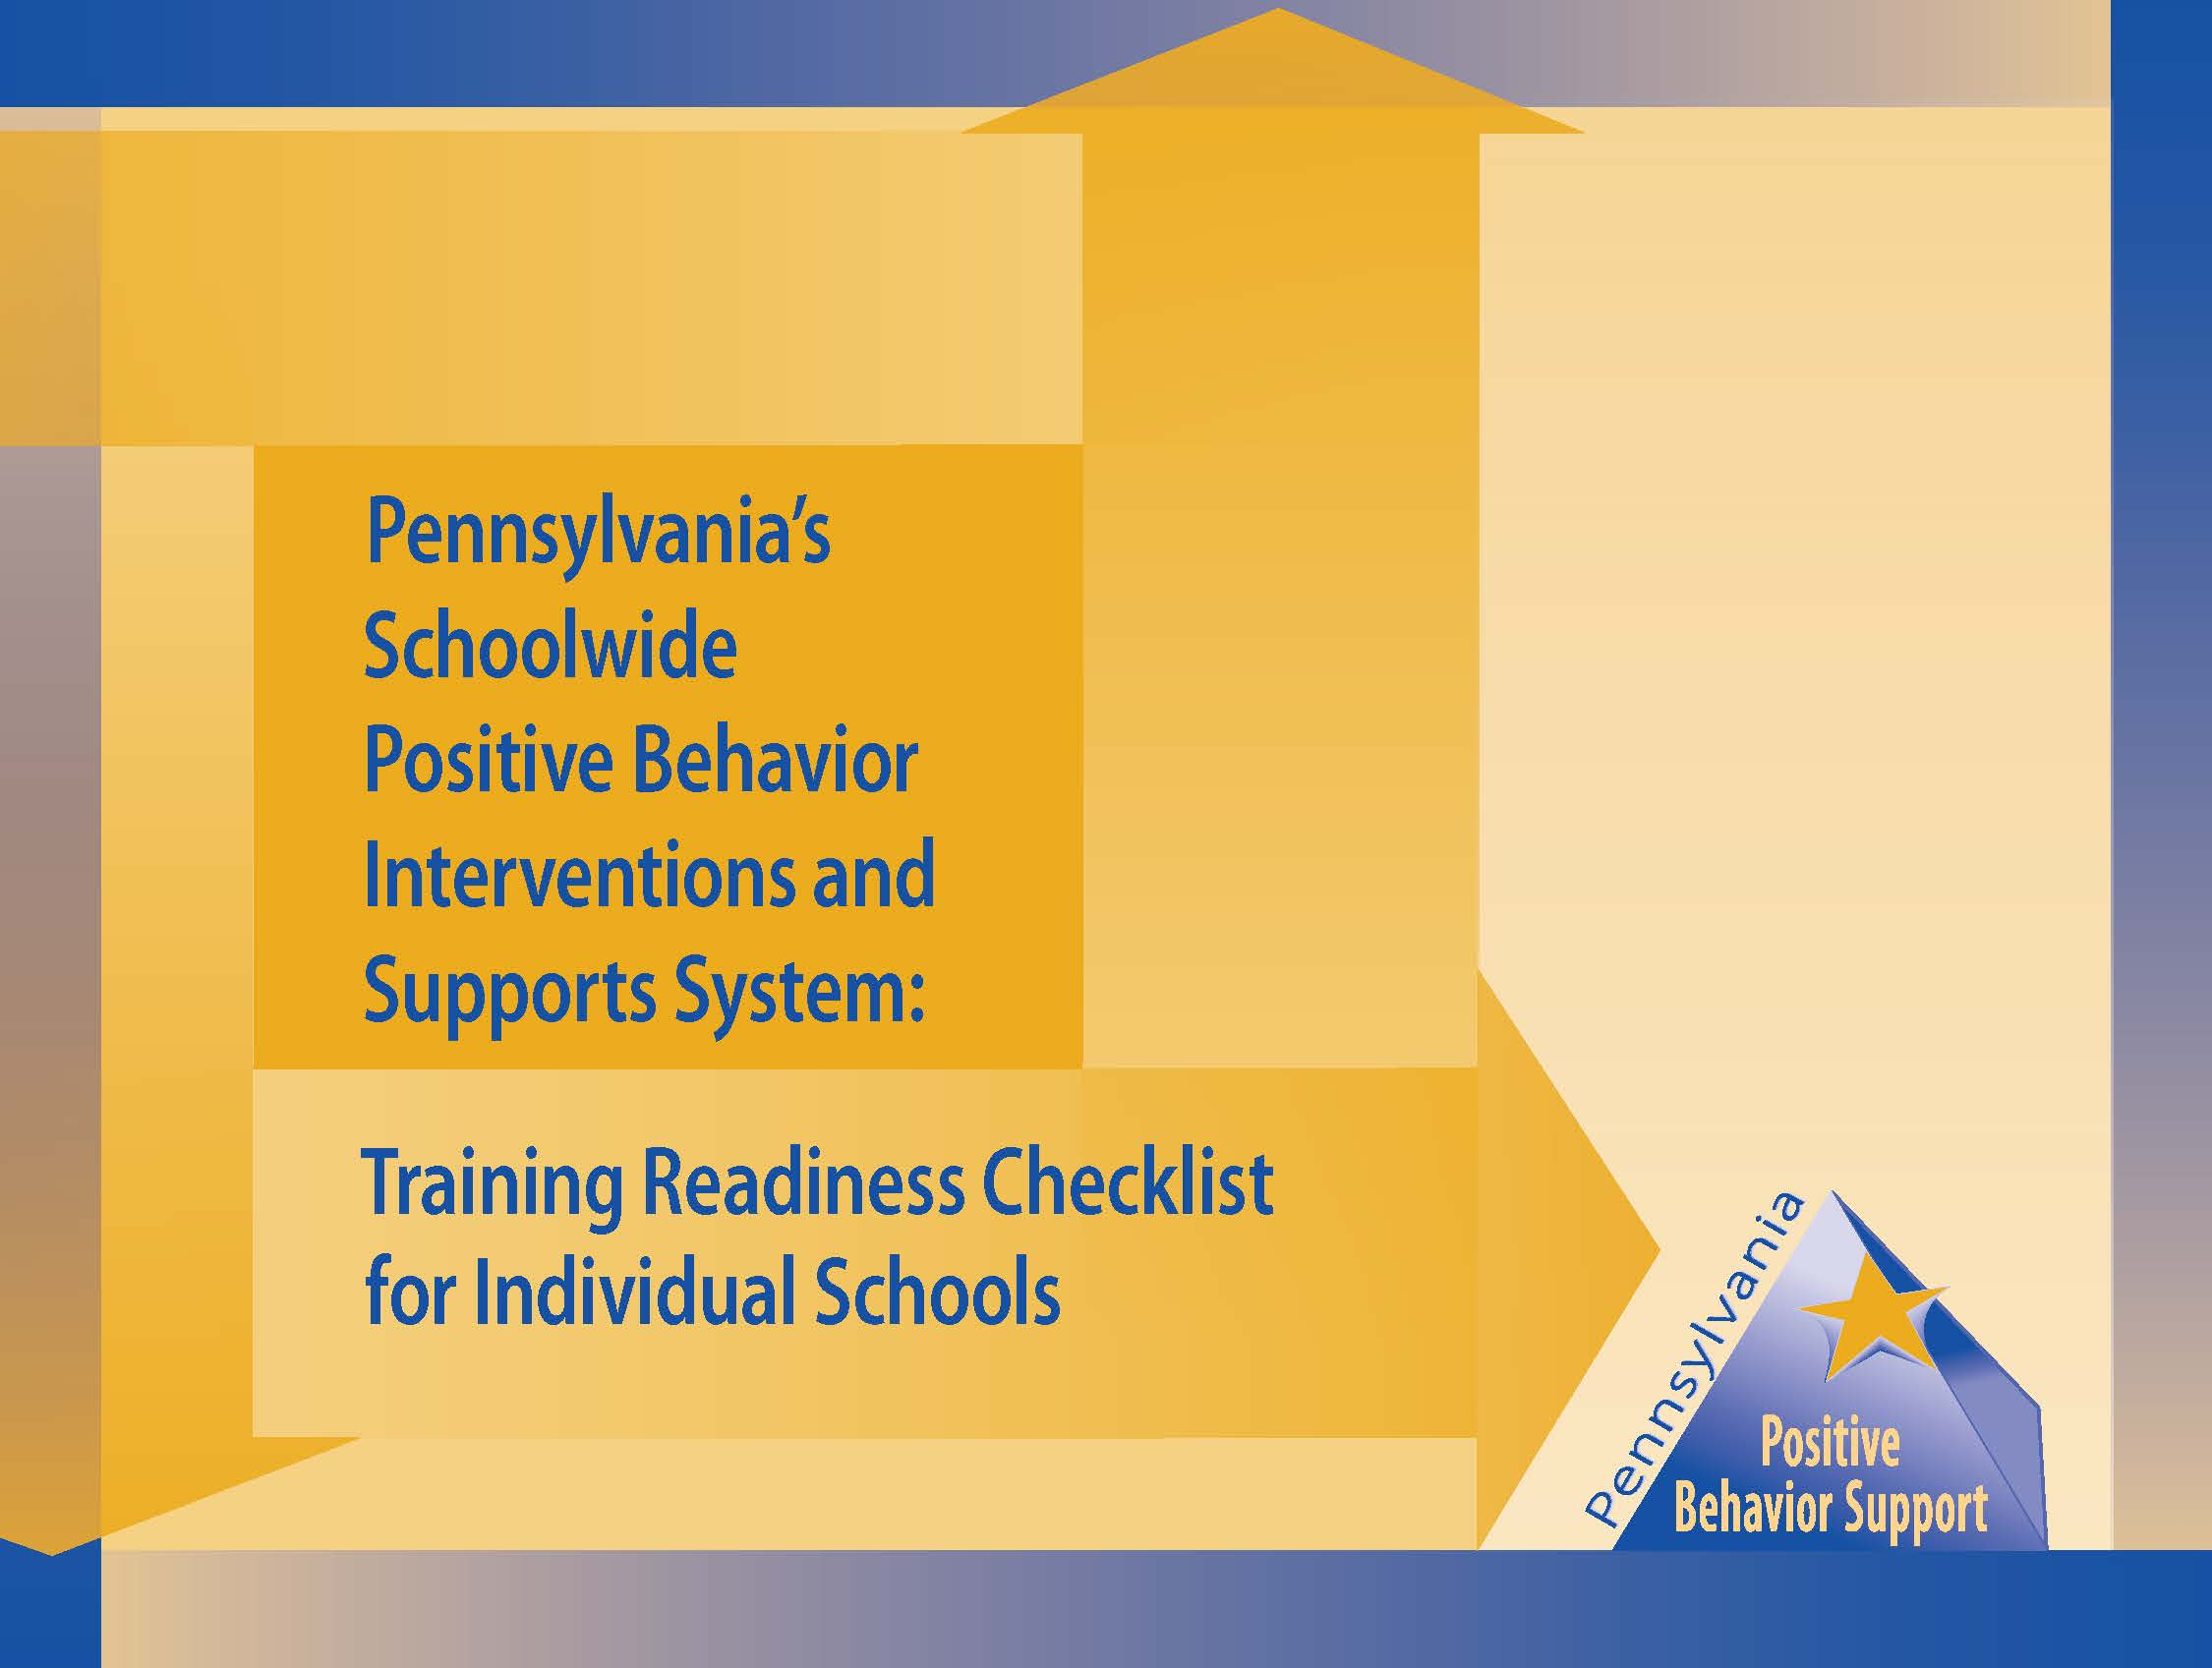 Pennsylvania's Schoolwide Positive Behavior Interventions and Supports System: Training Readiness Checklist for Individual Schools